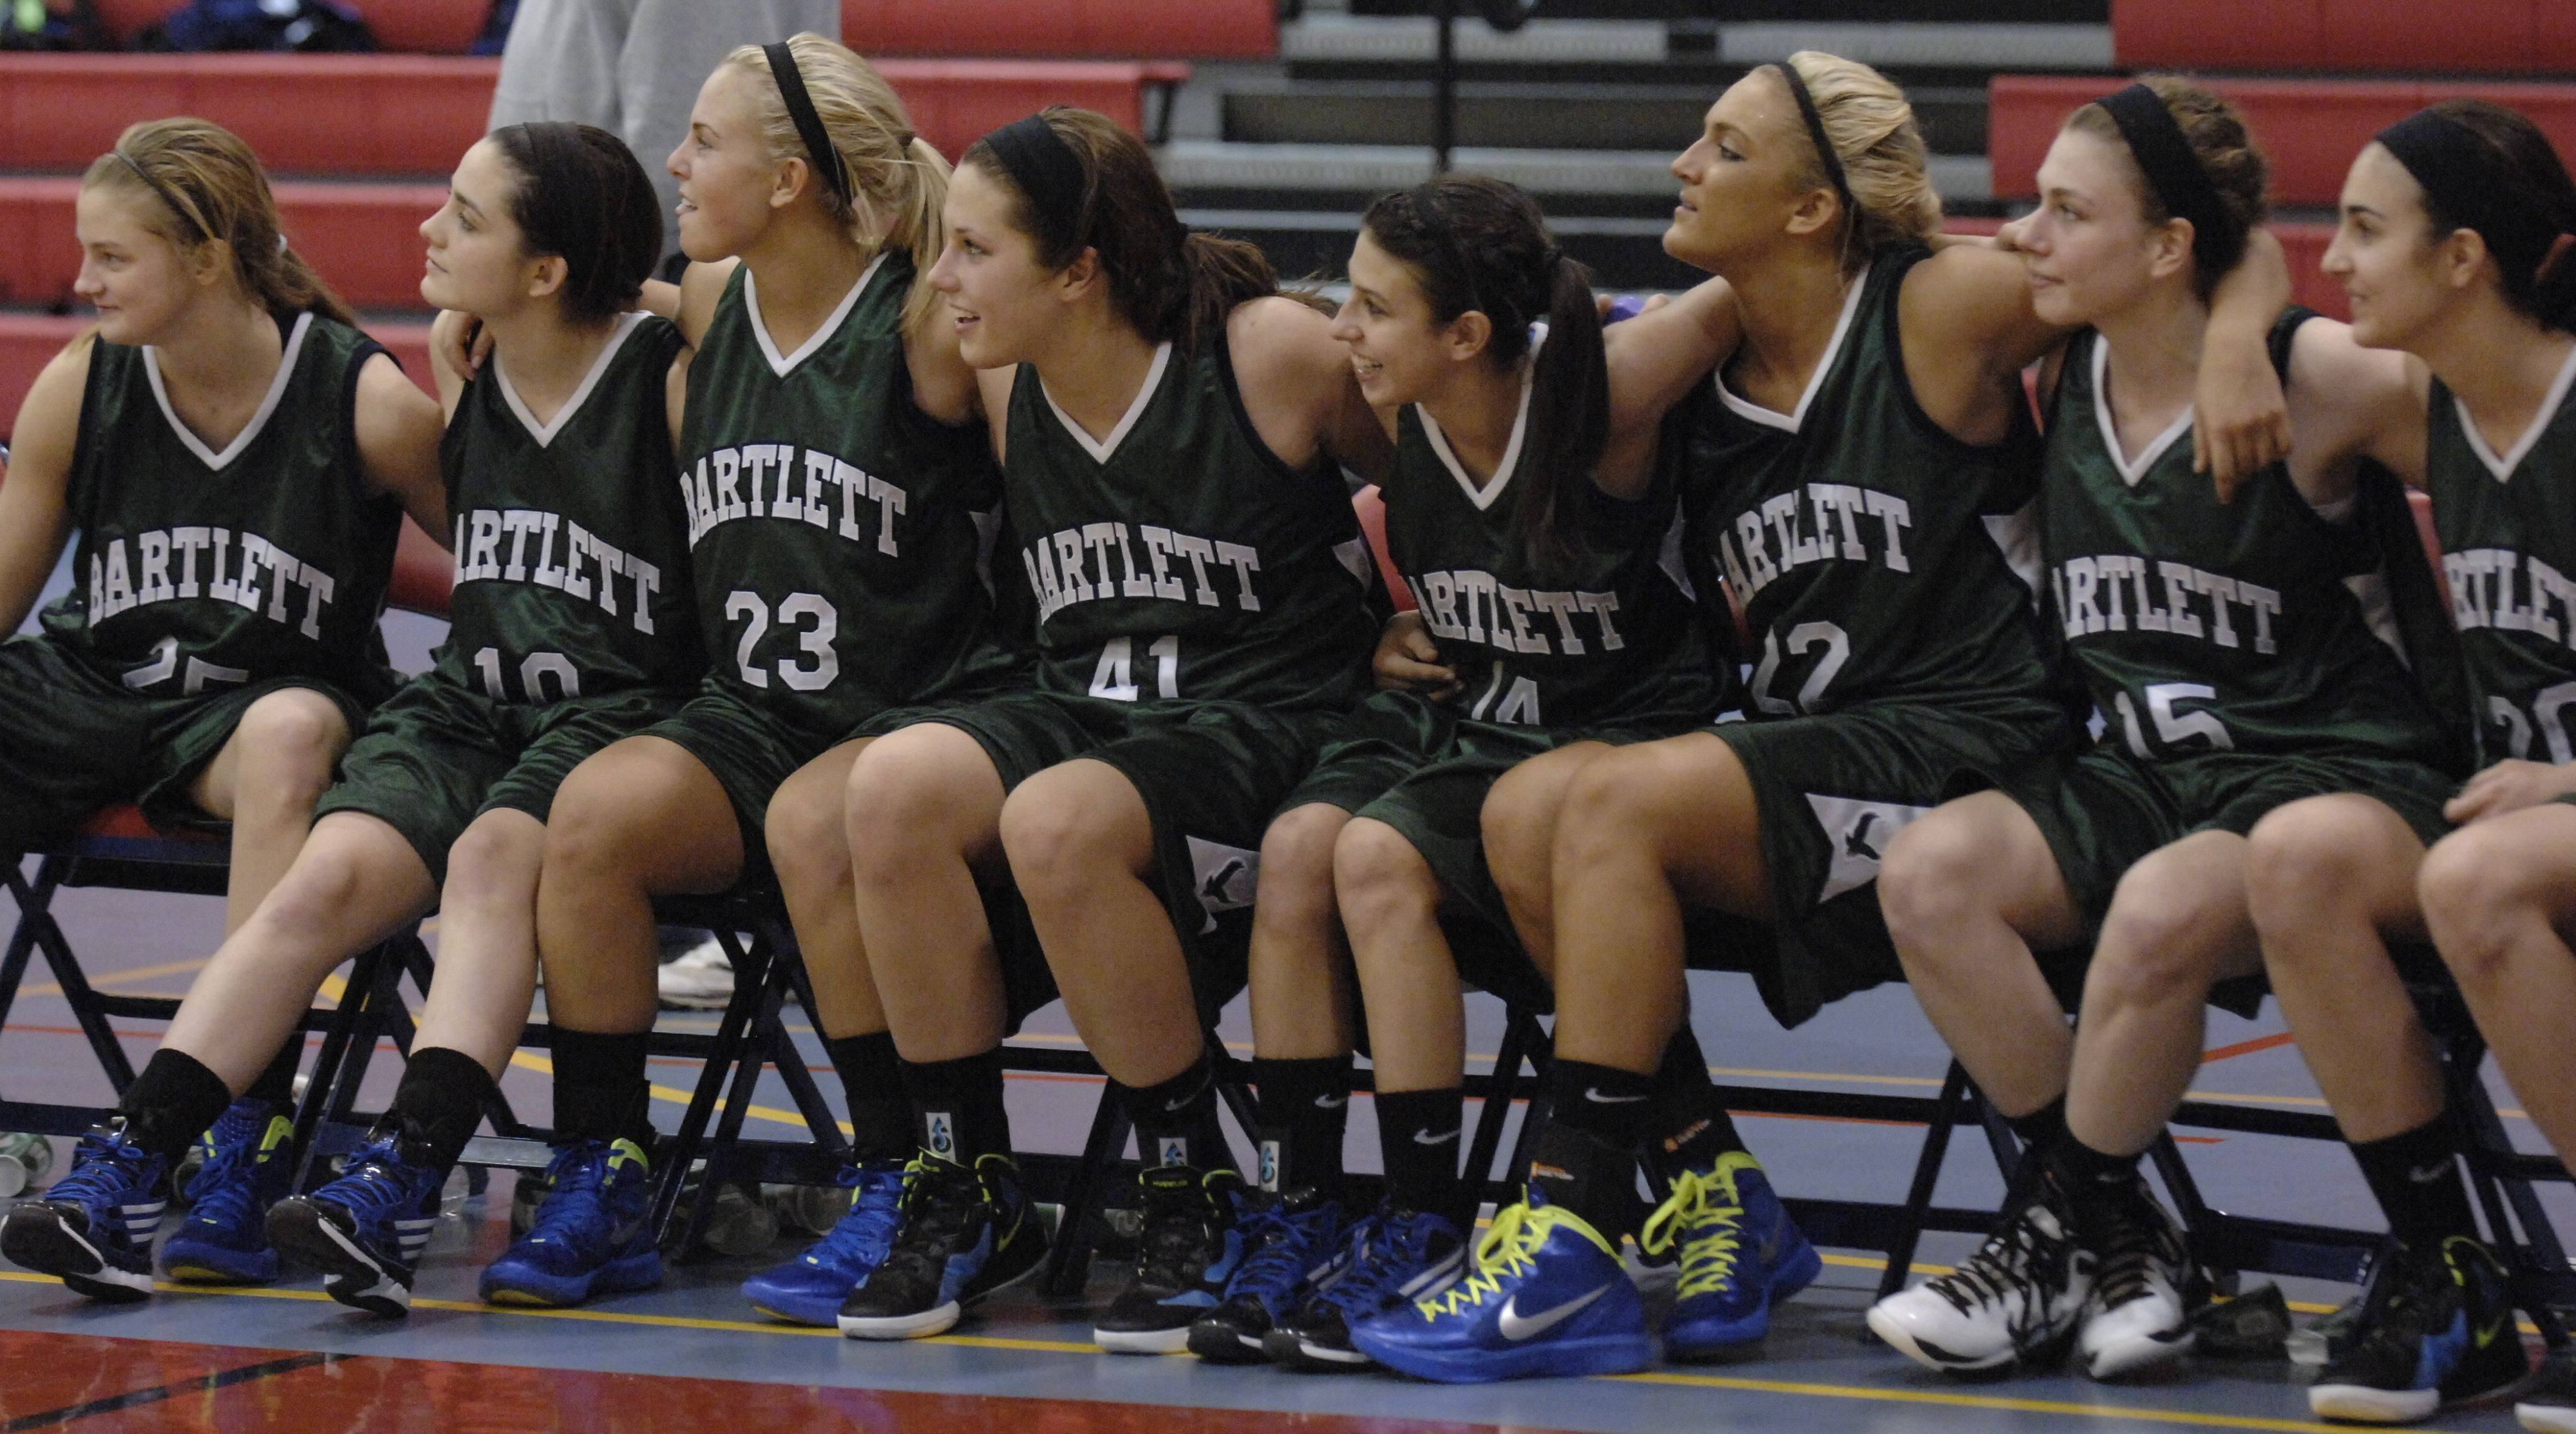 Images from Bartlett vs. New Trier for the championship of Dundee-Crown girls basketball tournament Thursday, December 29, 2011 in Carpentersville.